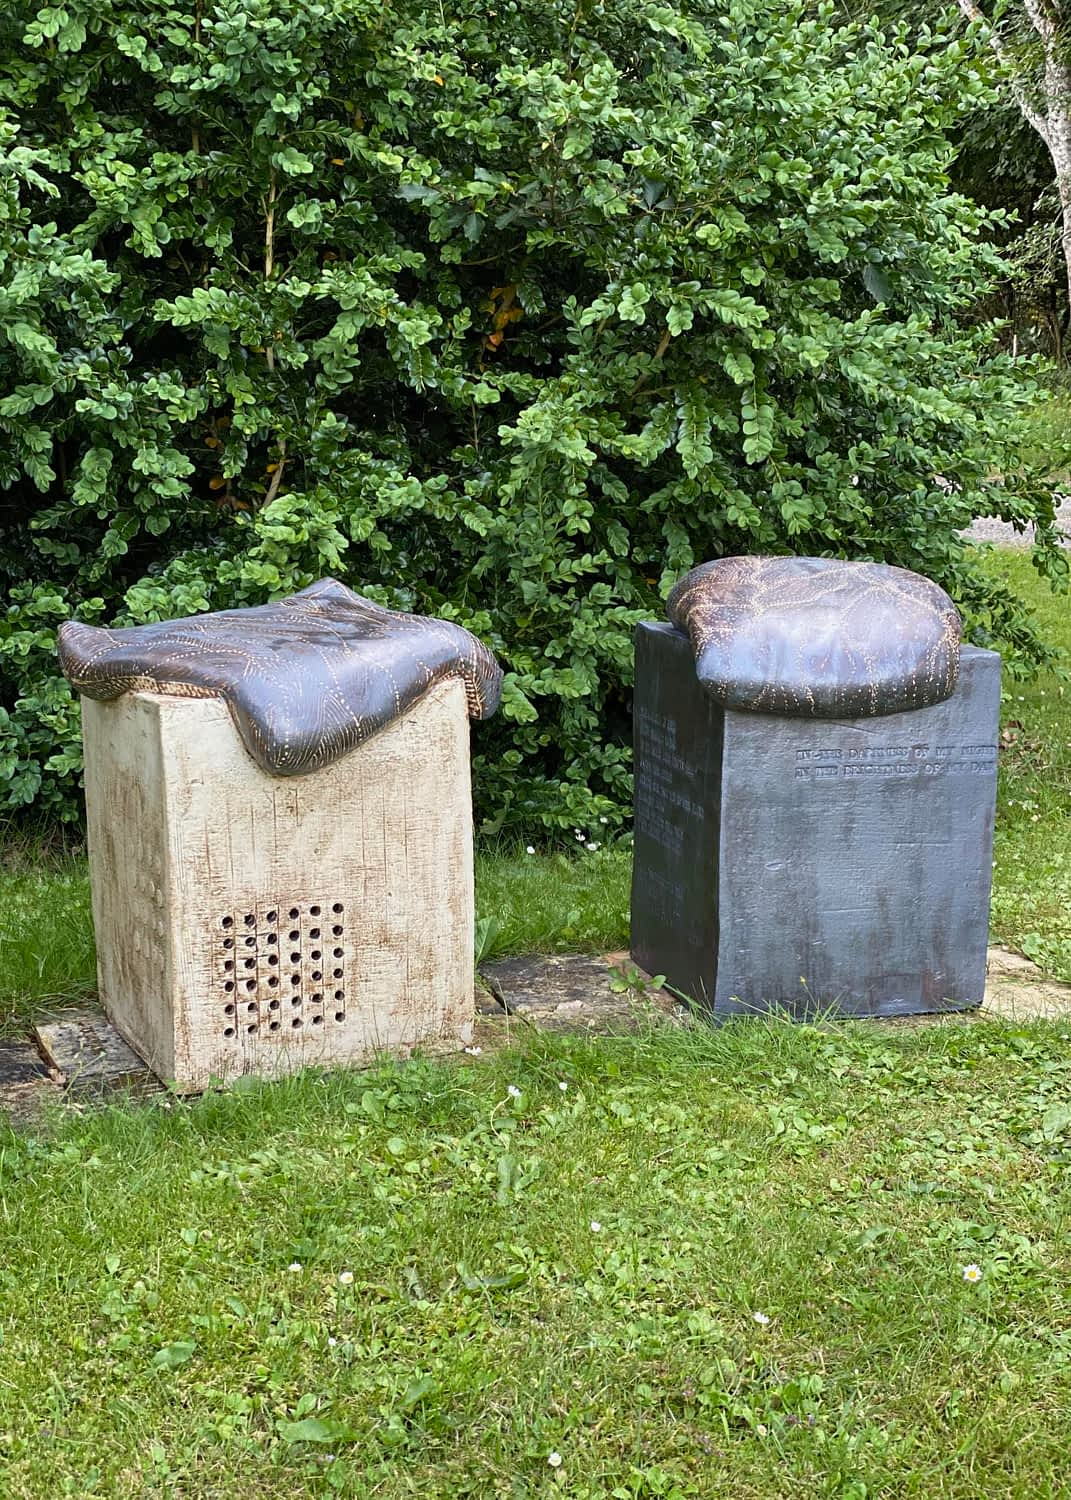 Two sculpture chairs on a lawn